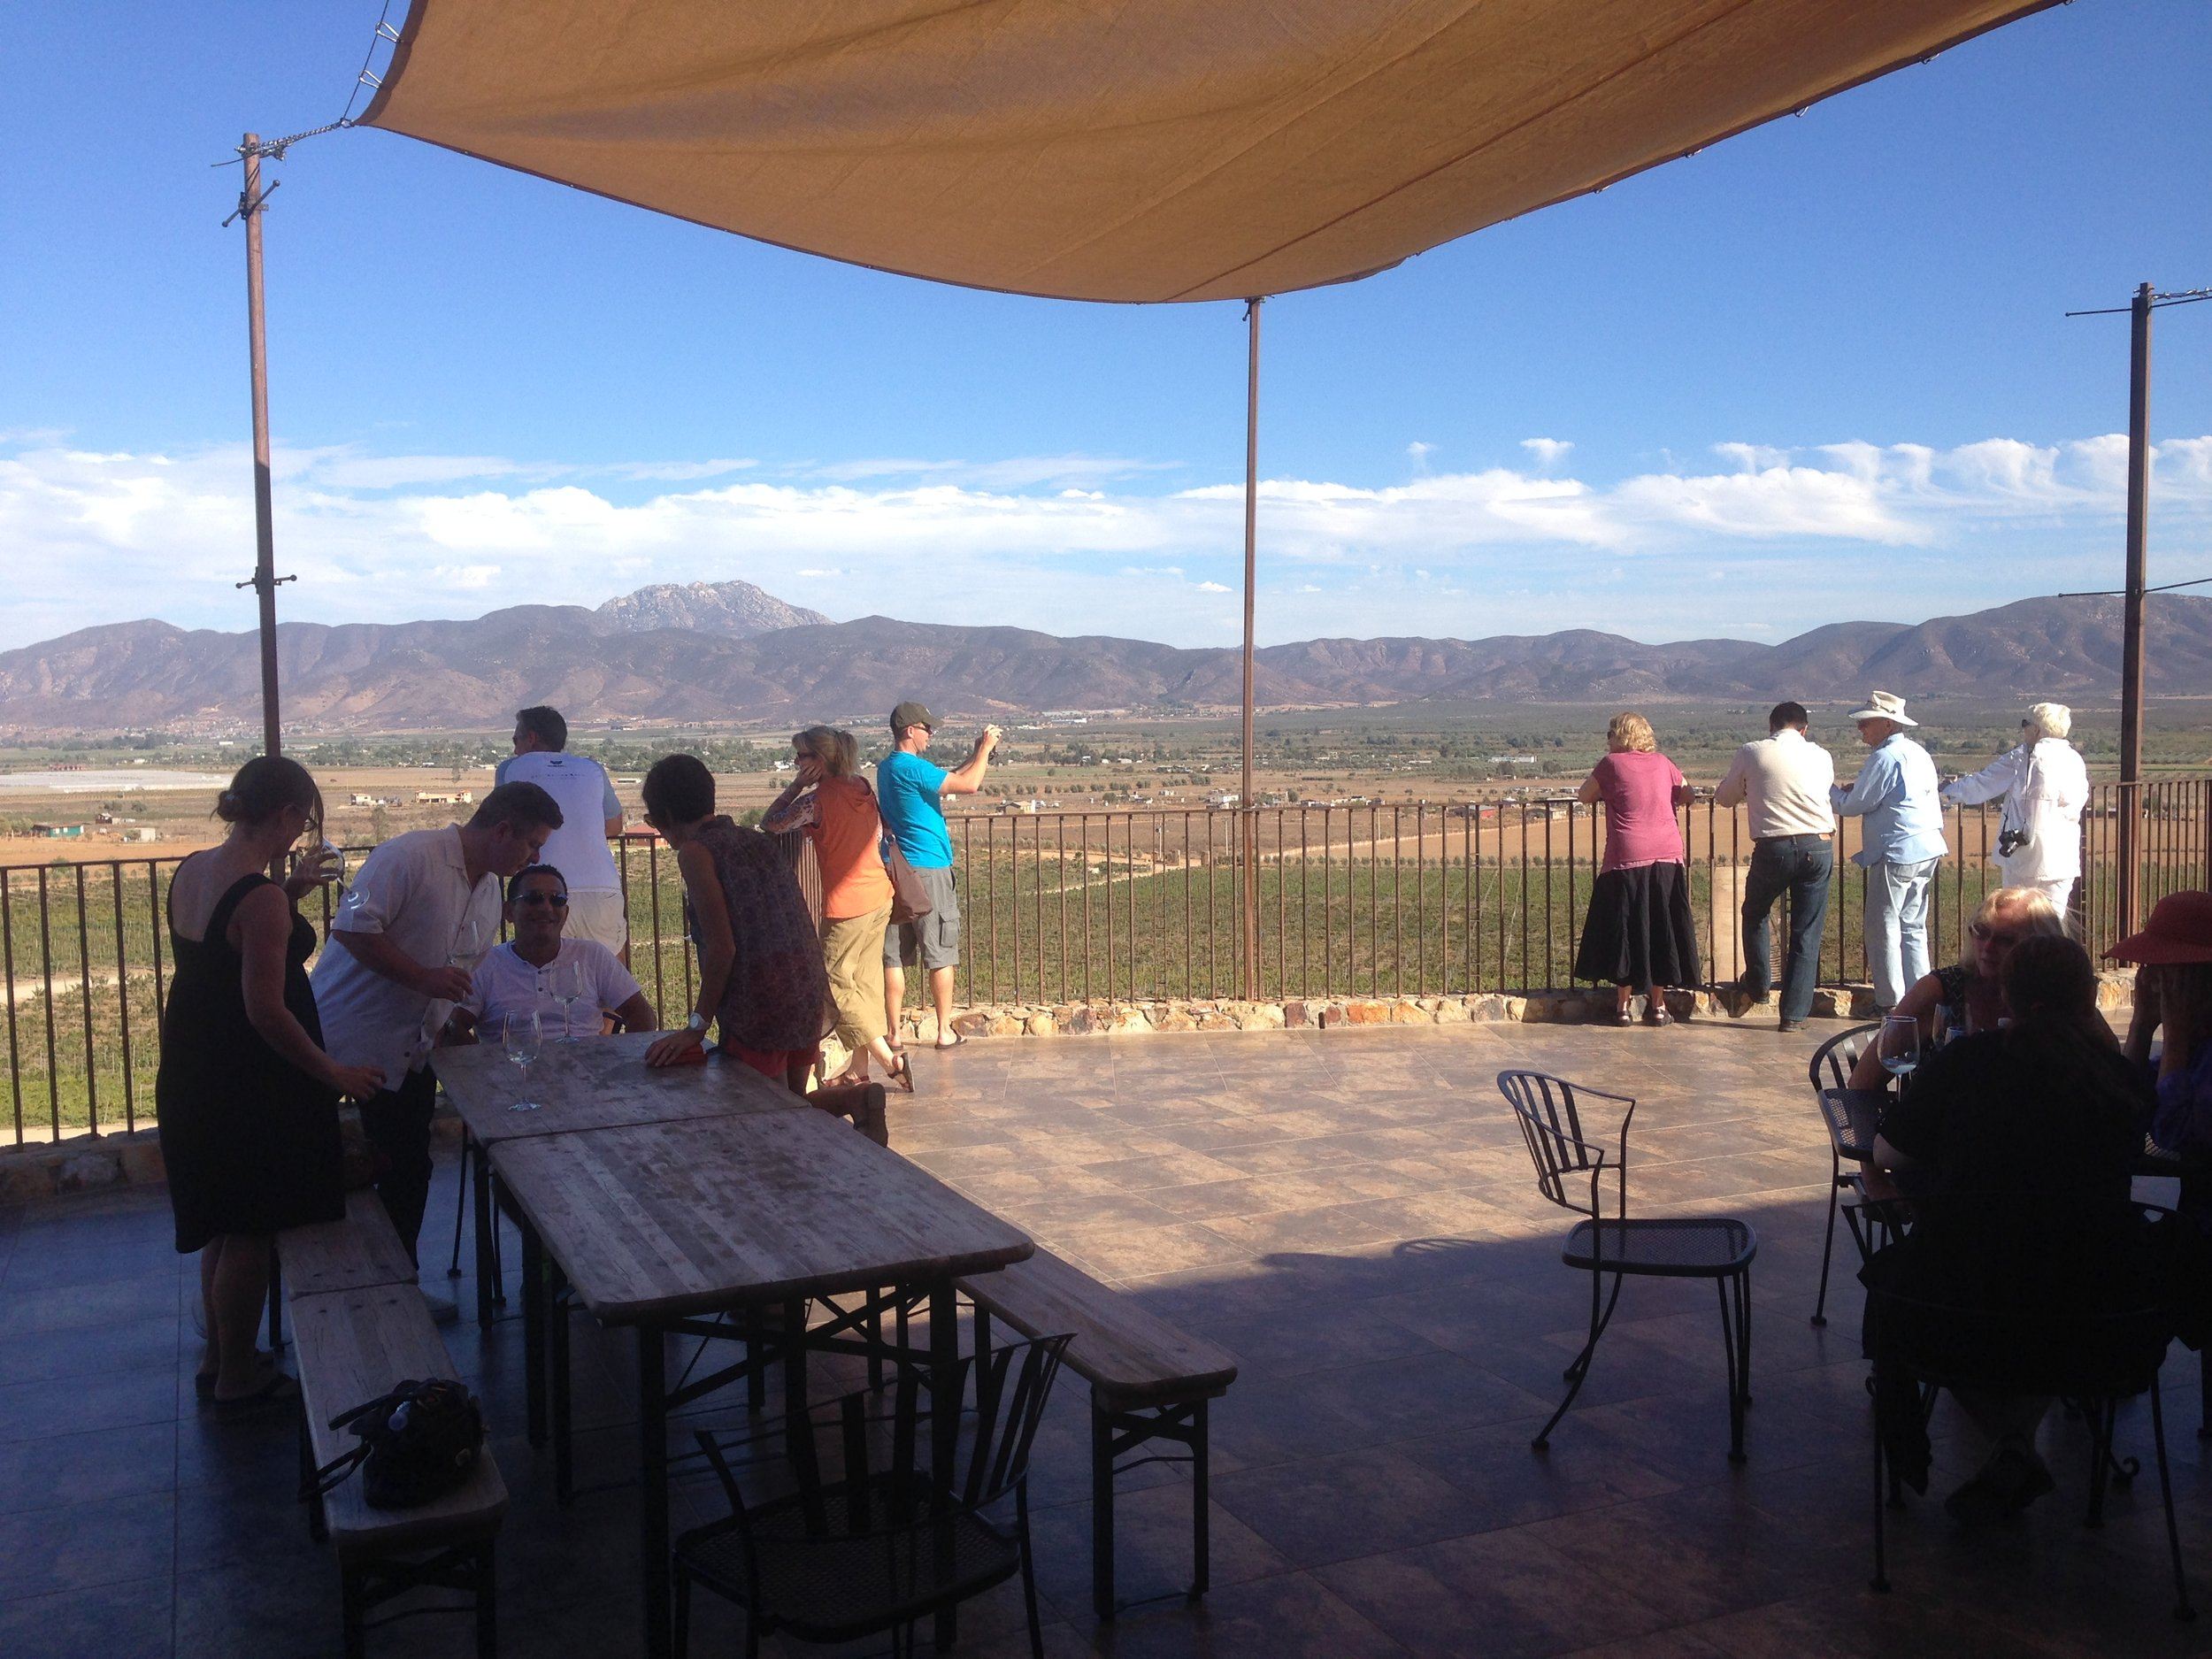 Enjoying the view and the wine at Las Nubes